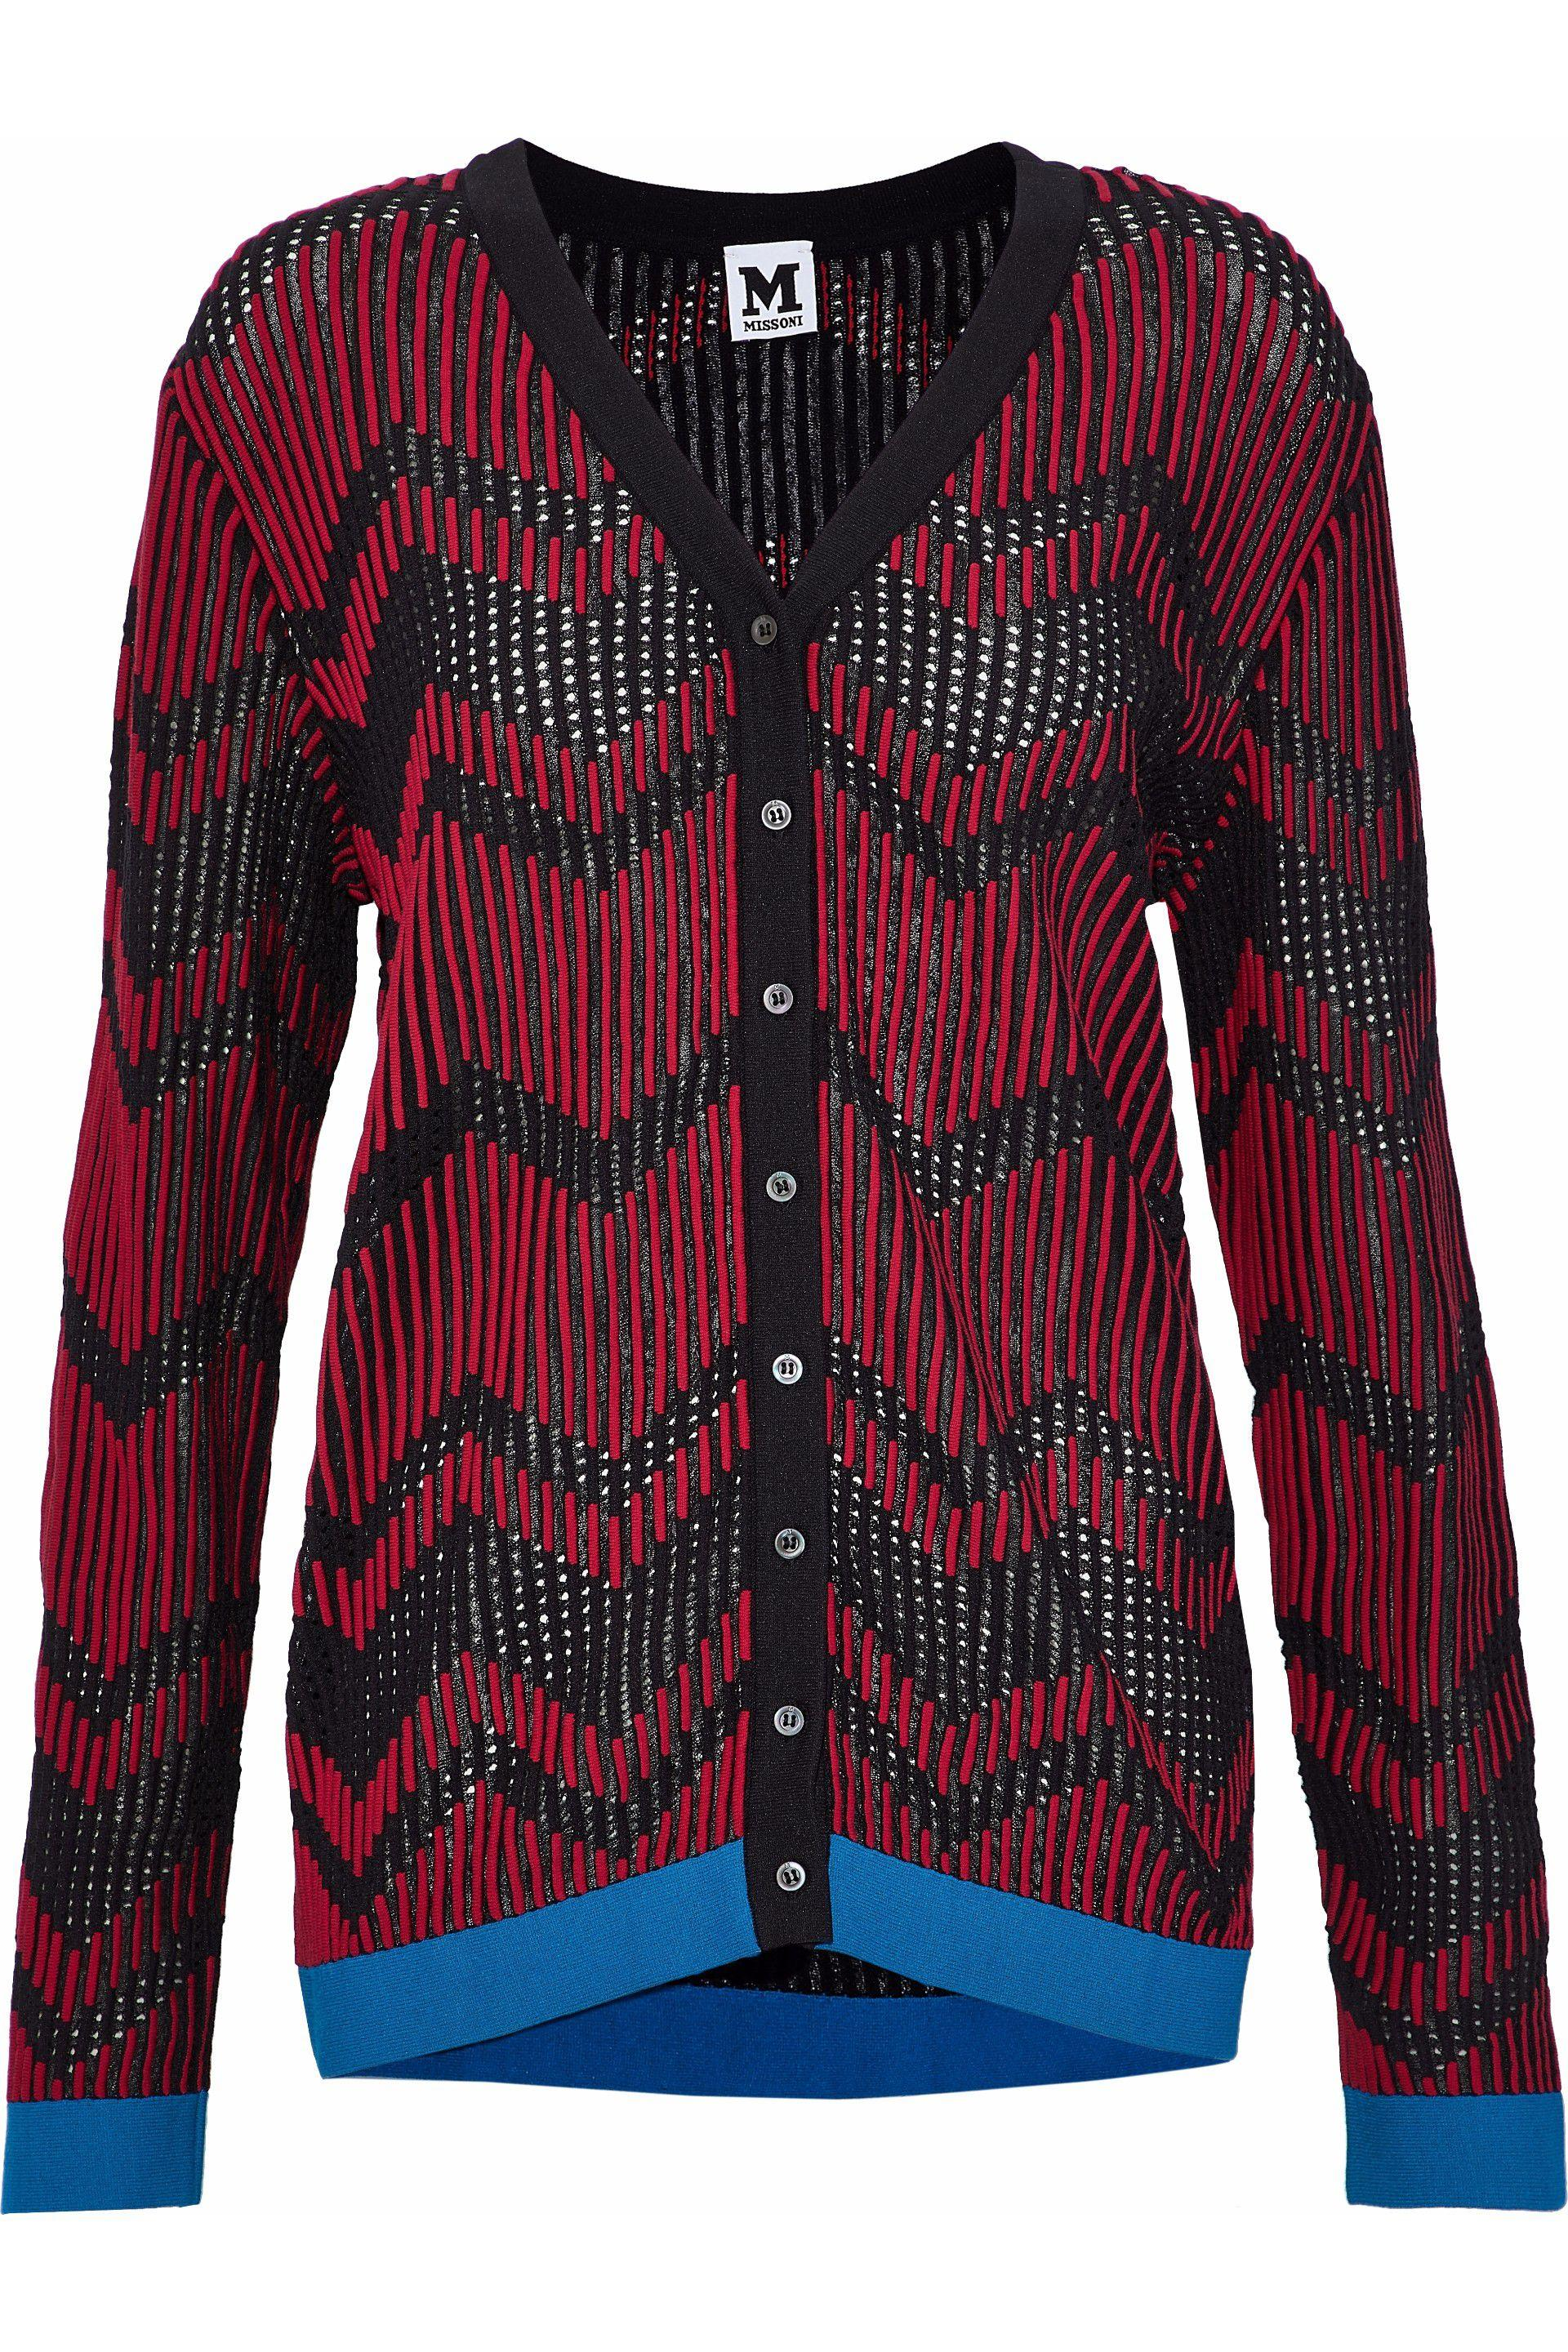 73e001febc M Missoni. Women s Woman Jacquard-knit Cardigan Multicolor